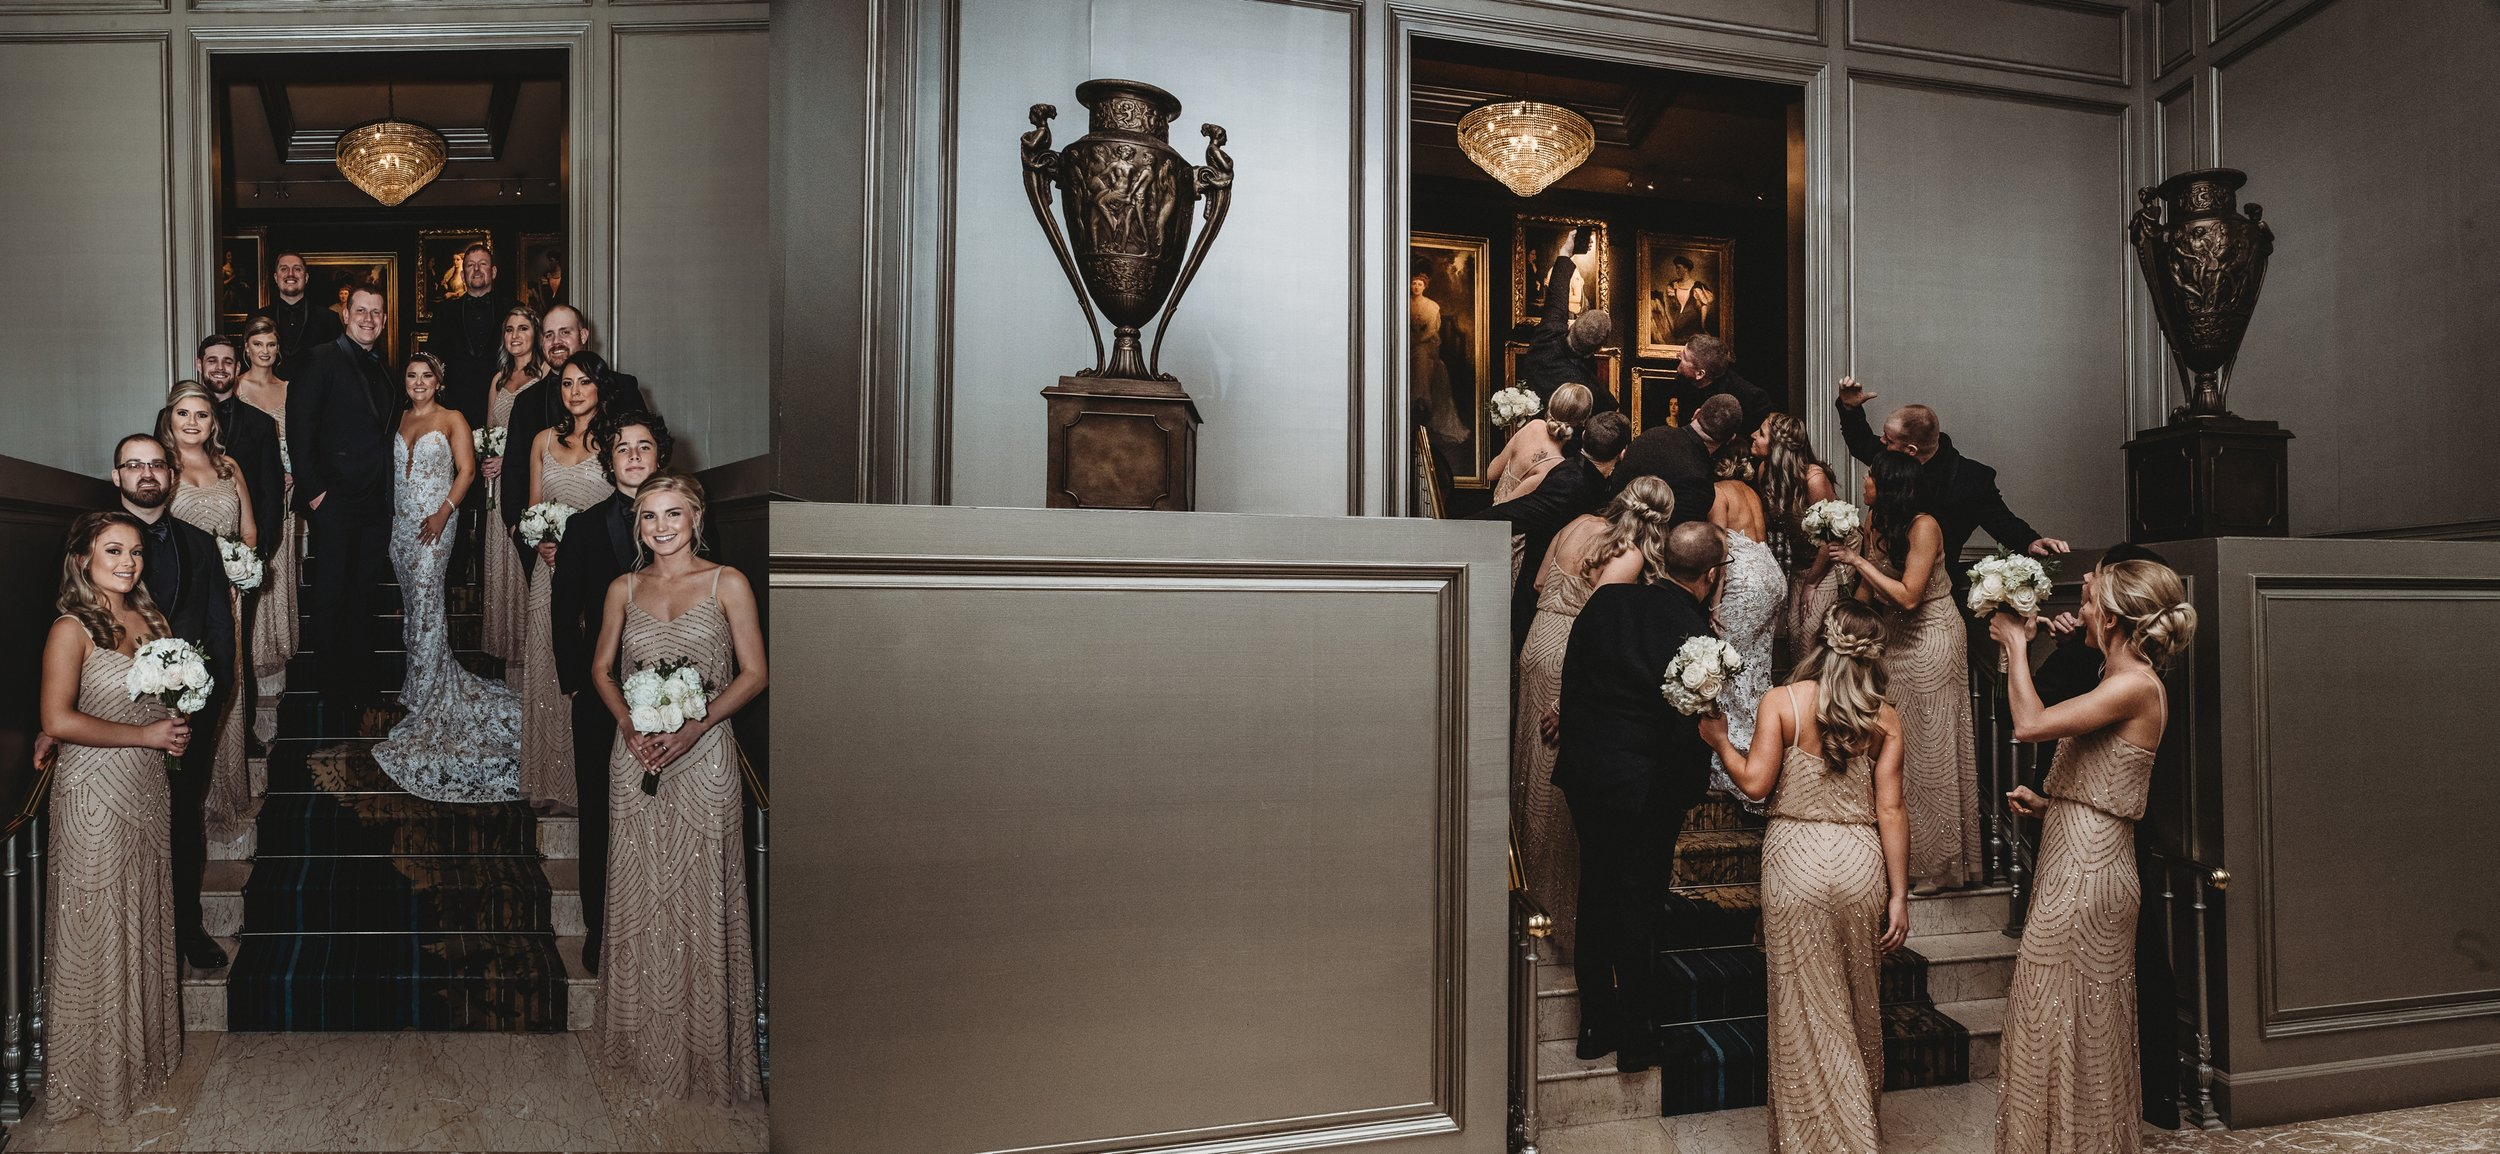 Classic Vintage Wedding | Ritz Carlton Atlanta, Georgia | Terry Farms Photography | Wedding Party Photo